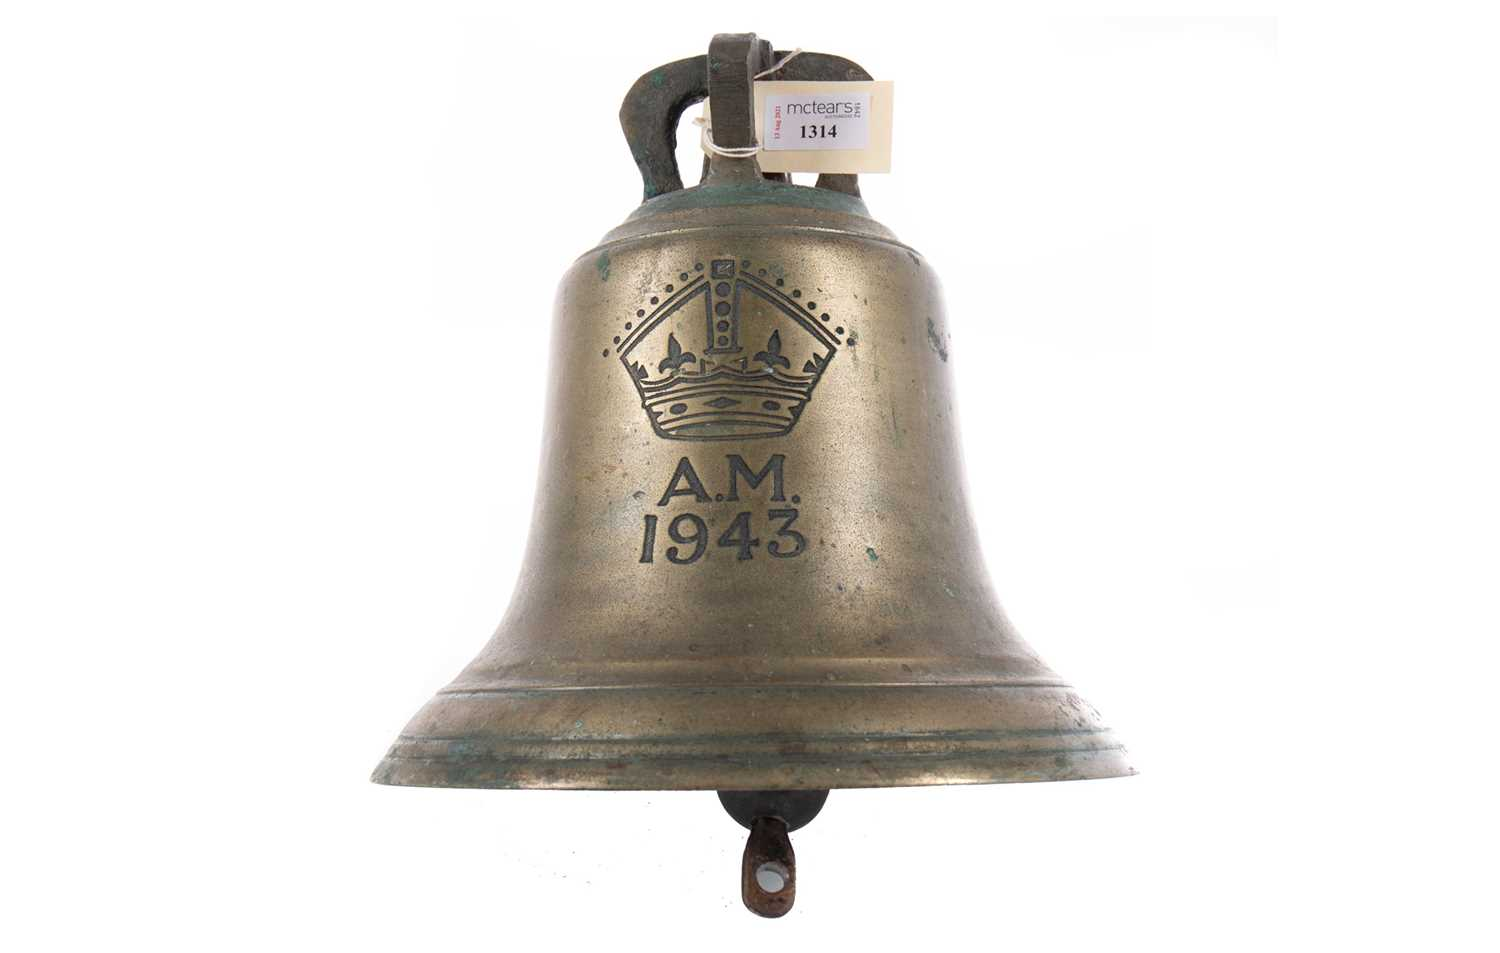 Lot 1314 - A WWII AIR MINISTRY R.A.F. SCRAMBLE BELL